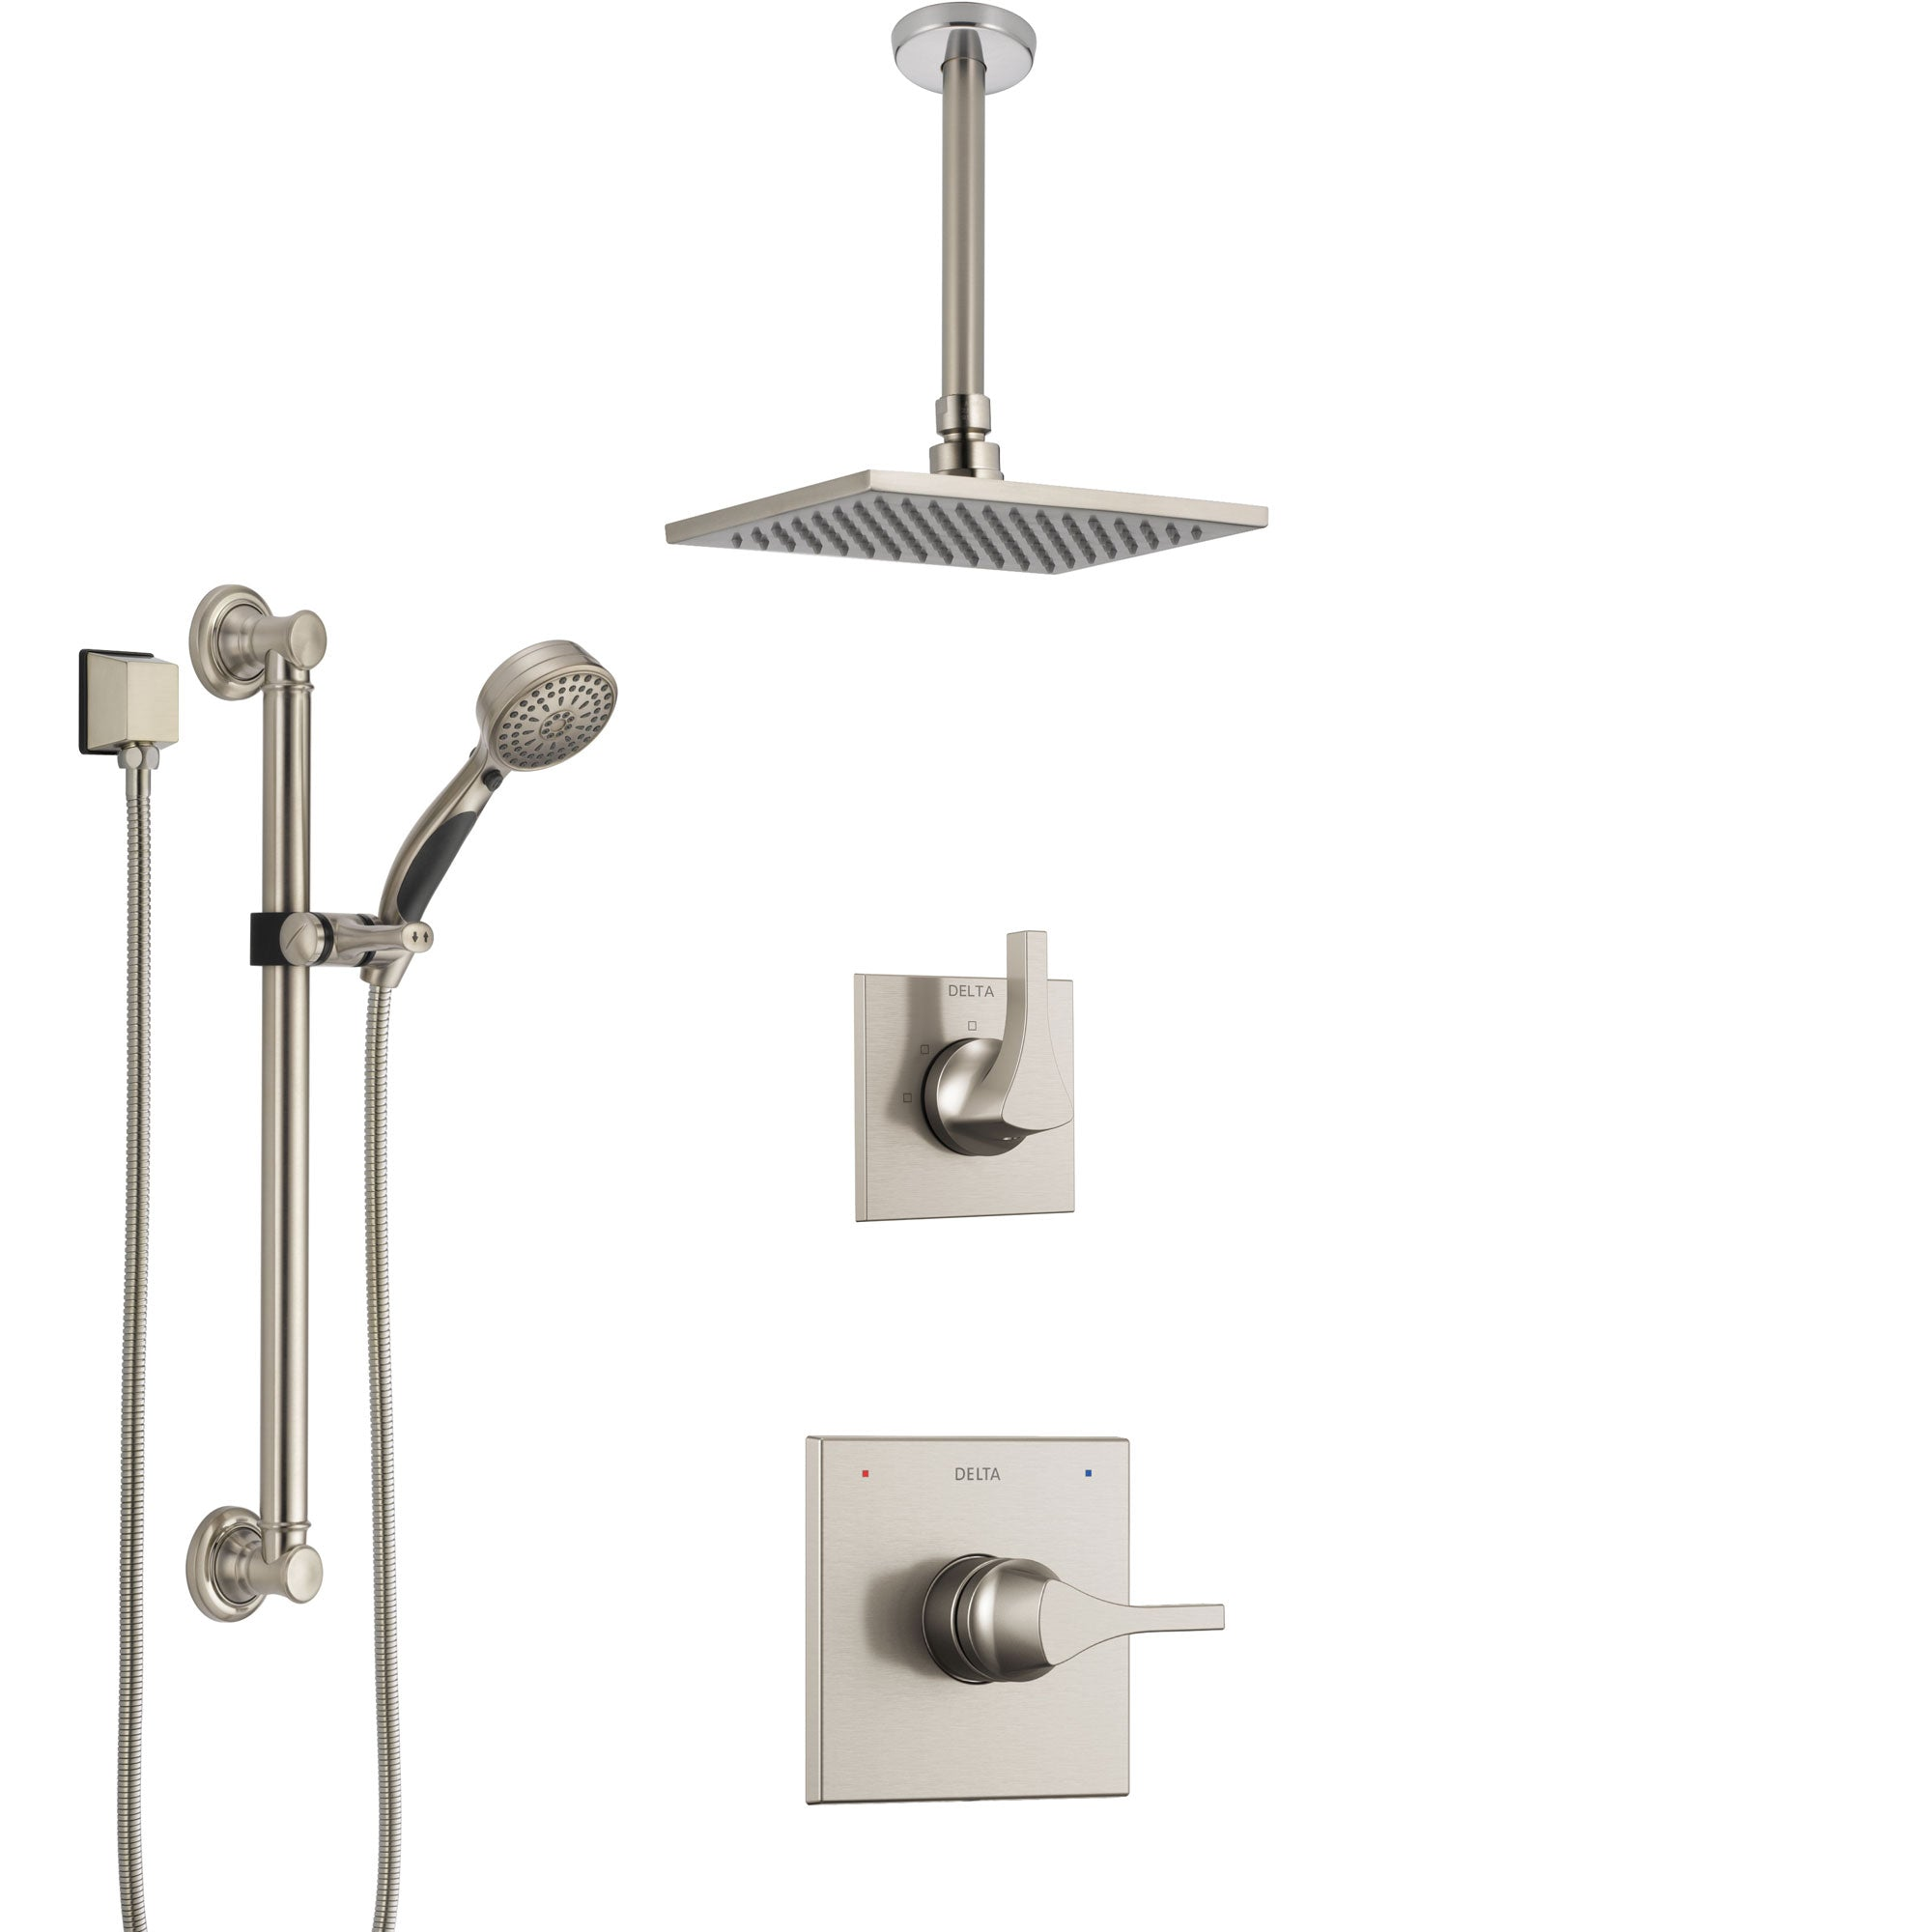 Delta Zura Stainless Steel Finish Shower System with Control Handle, Diverter, Ceiling Mount Showerhead, and Hand Shower with Grab Bar SS1474SS4